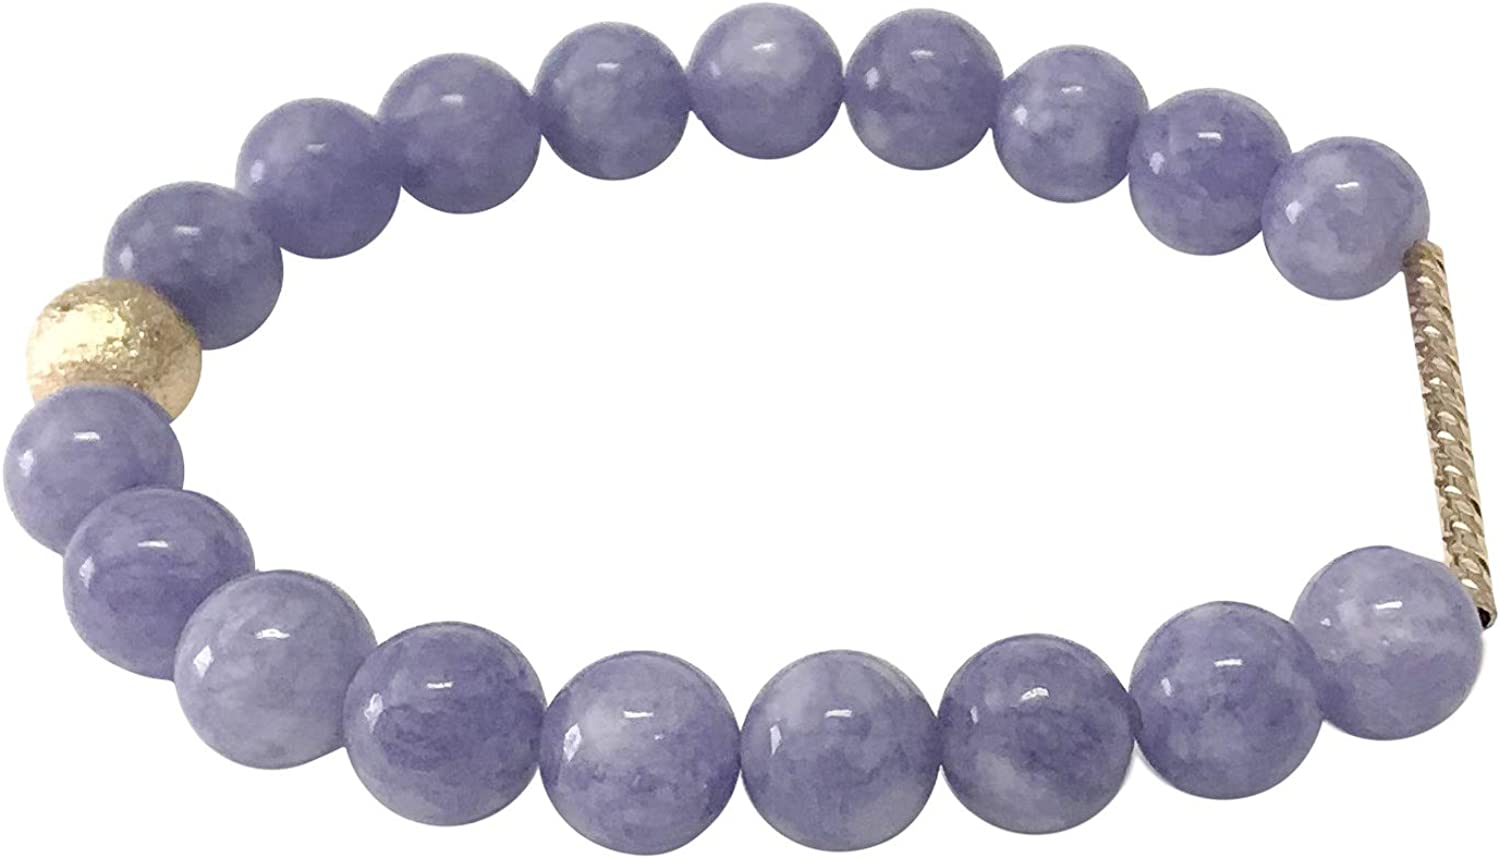 Juneau Luxe Women's Natural Semi Precious Gemstone Beaded Stretch Bracelets 8mm Natural Handmade Stone Beads Healing Crystals Chakra Energy Bangle Gold Filled Detail